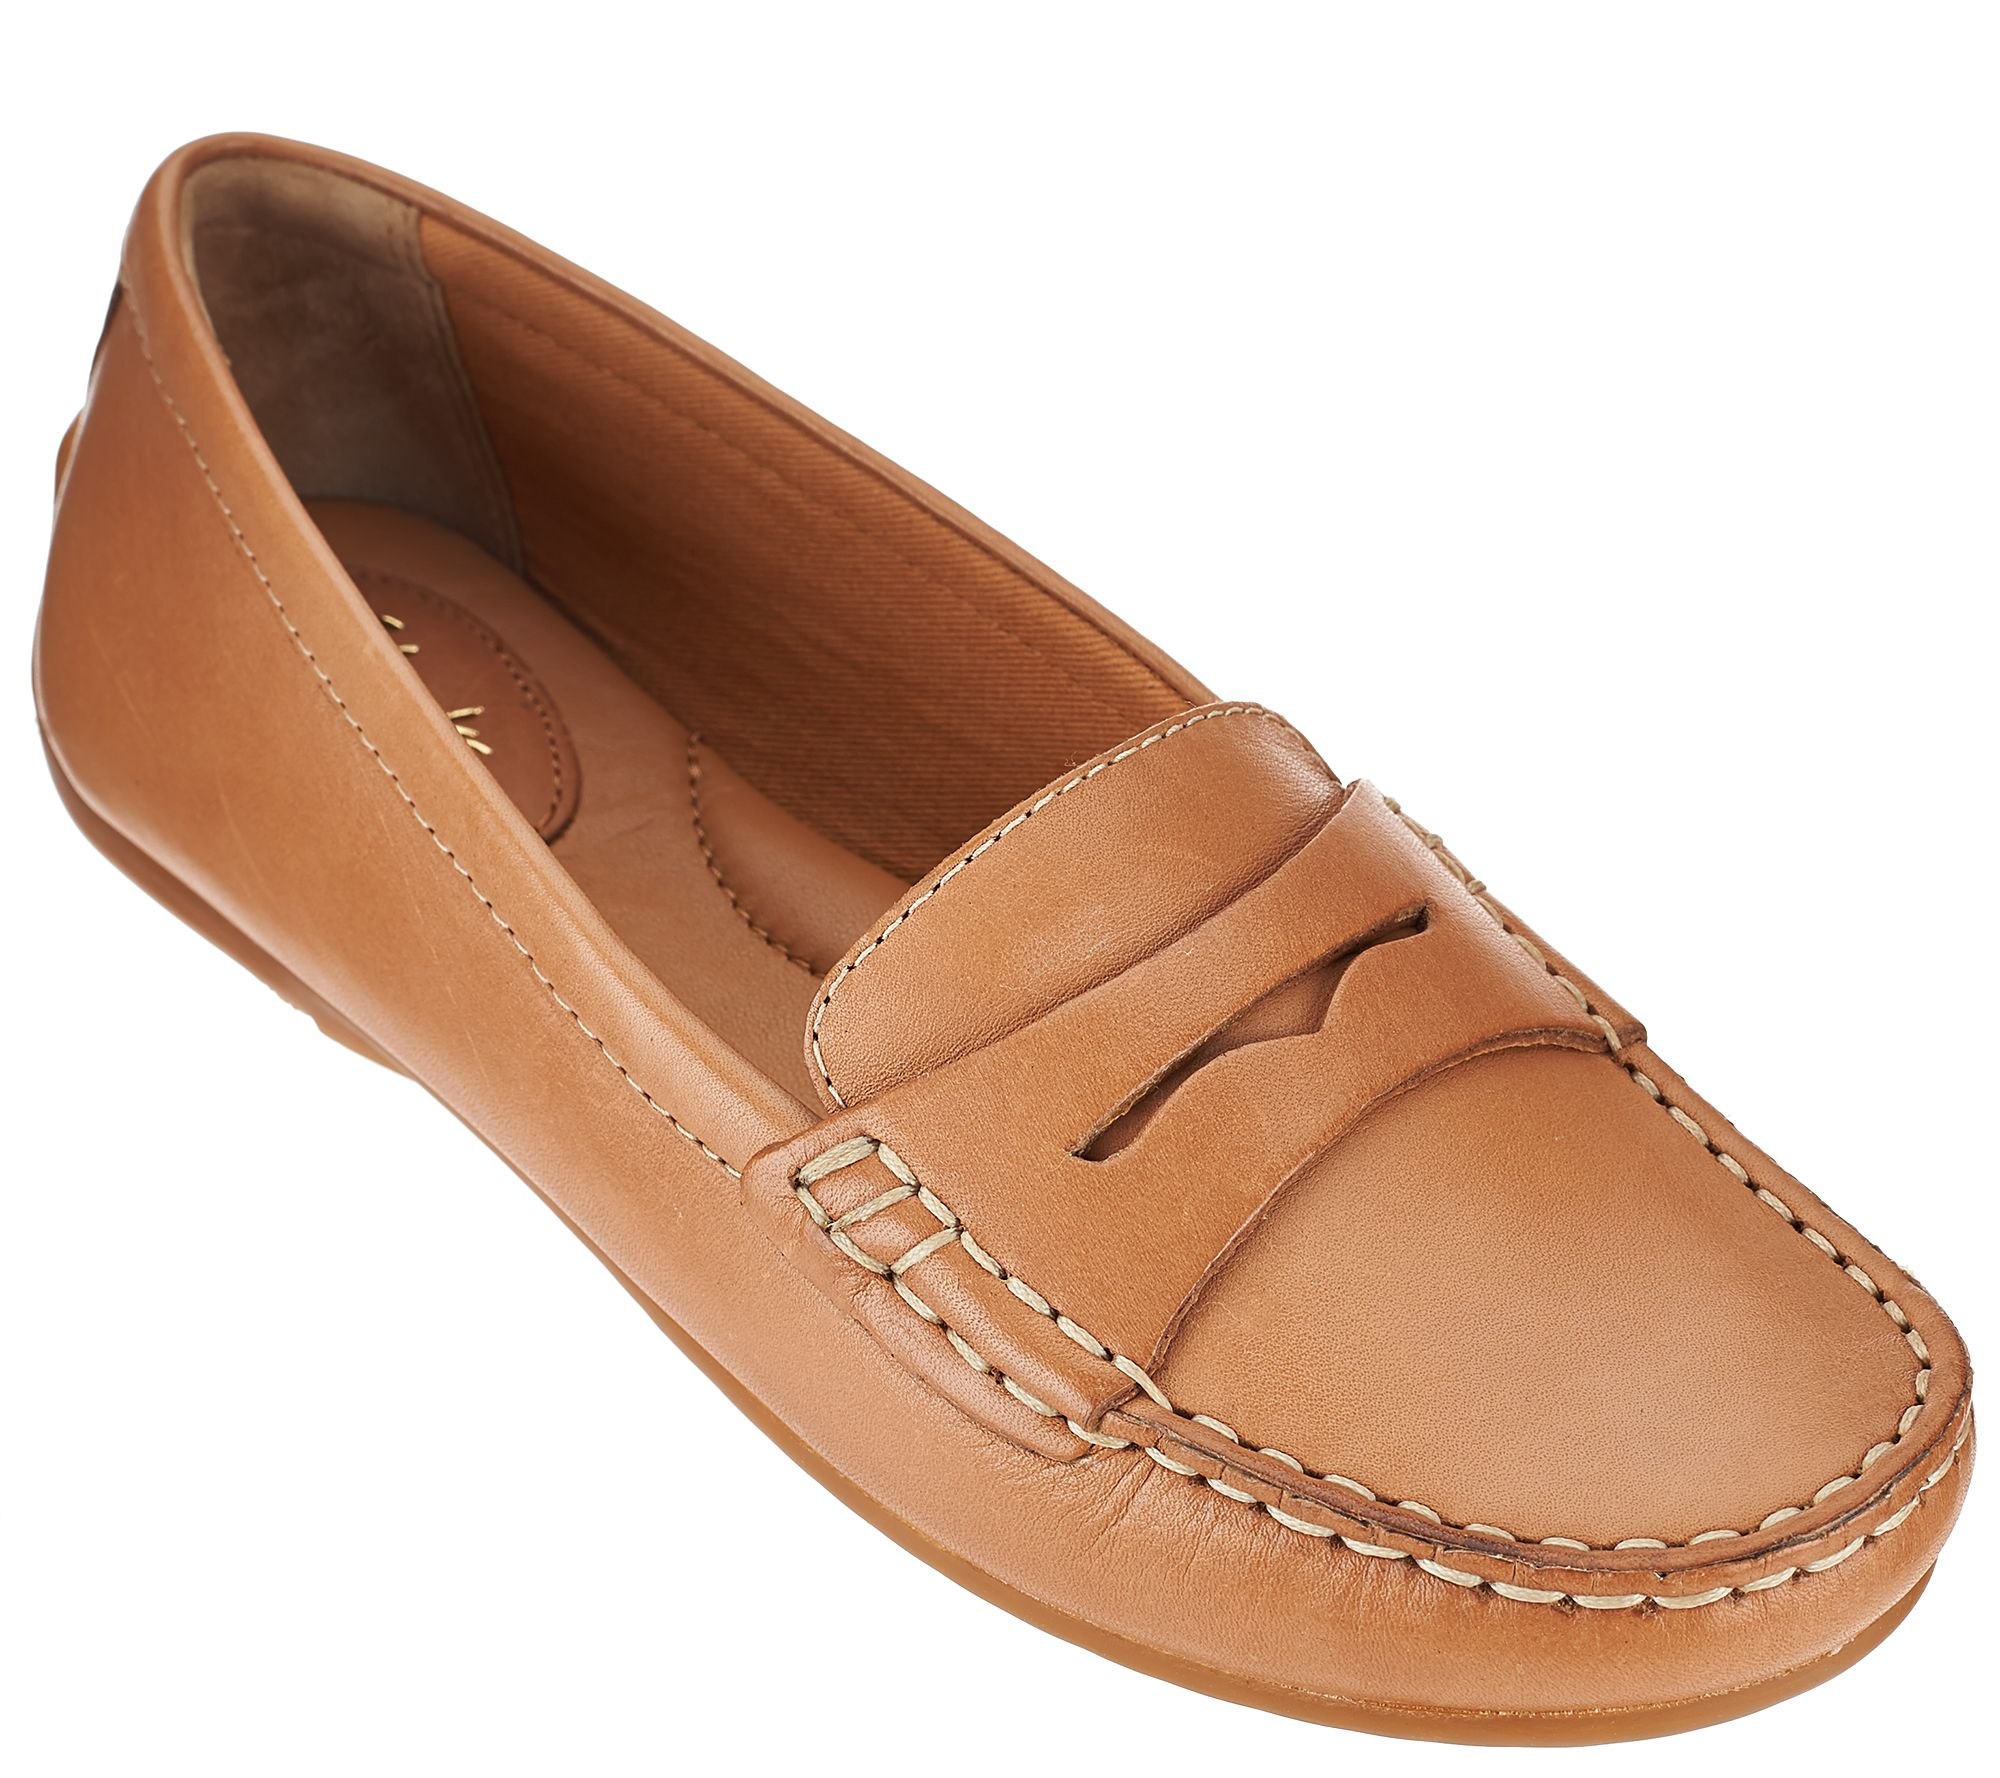 Clarks Artisan Leather or Nubuck Loafers - Doraville Nest - Page 1 — QVC.com